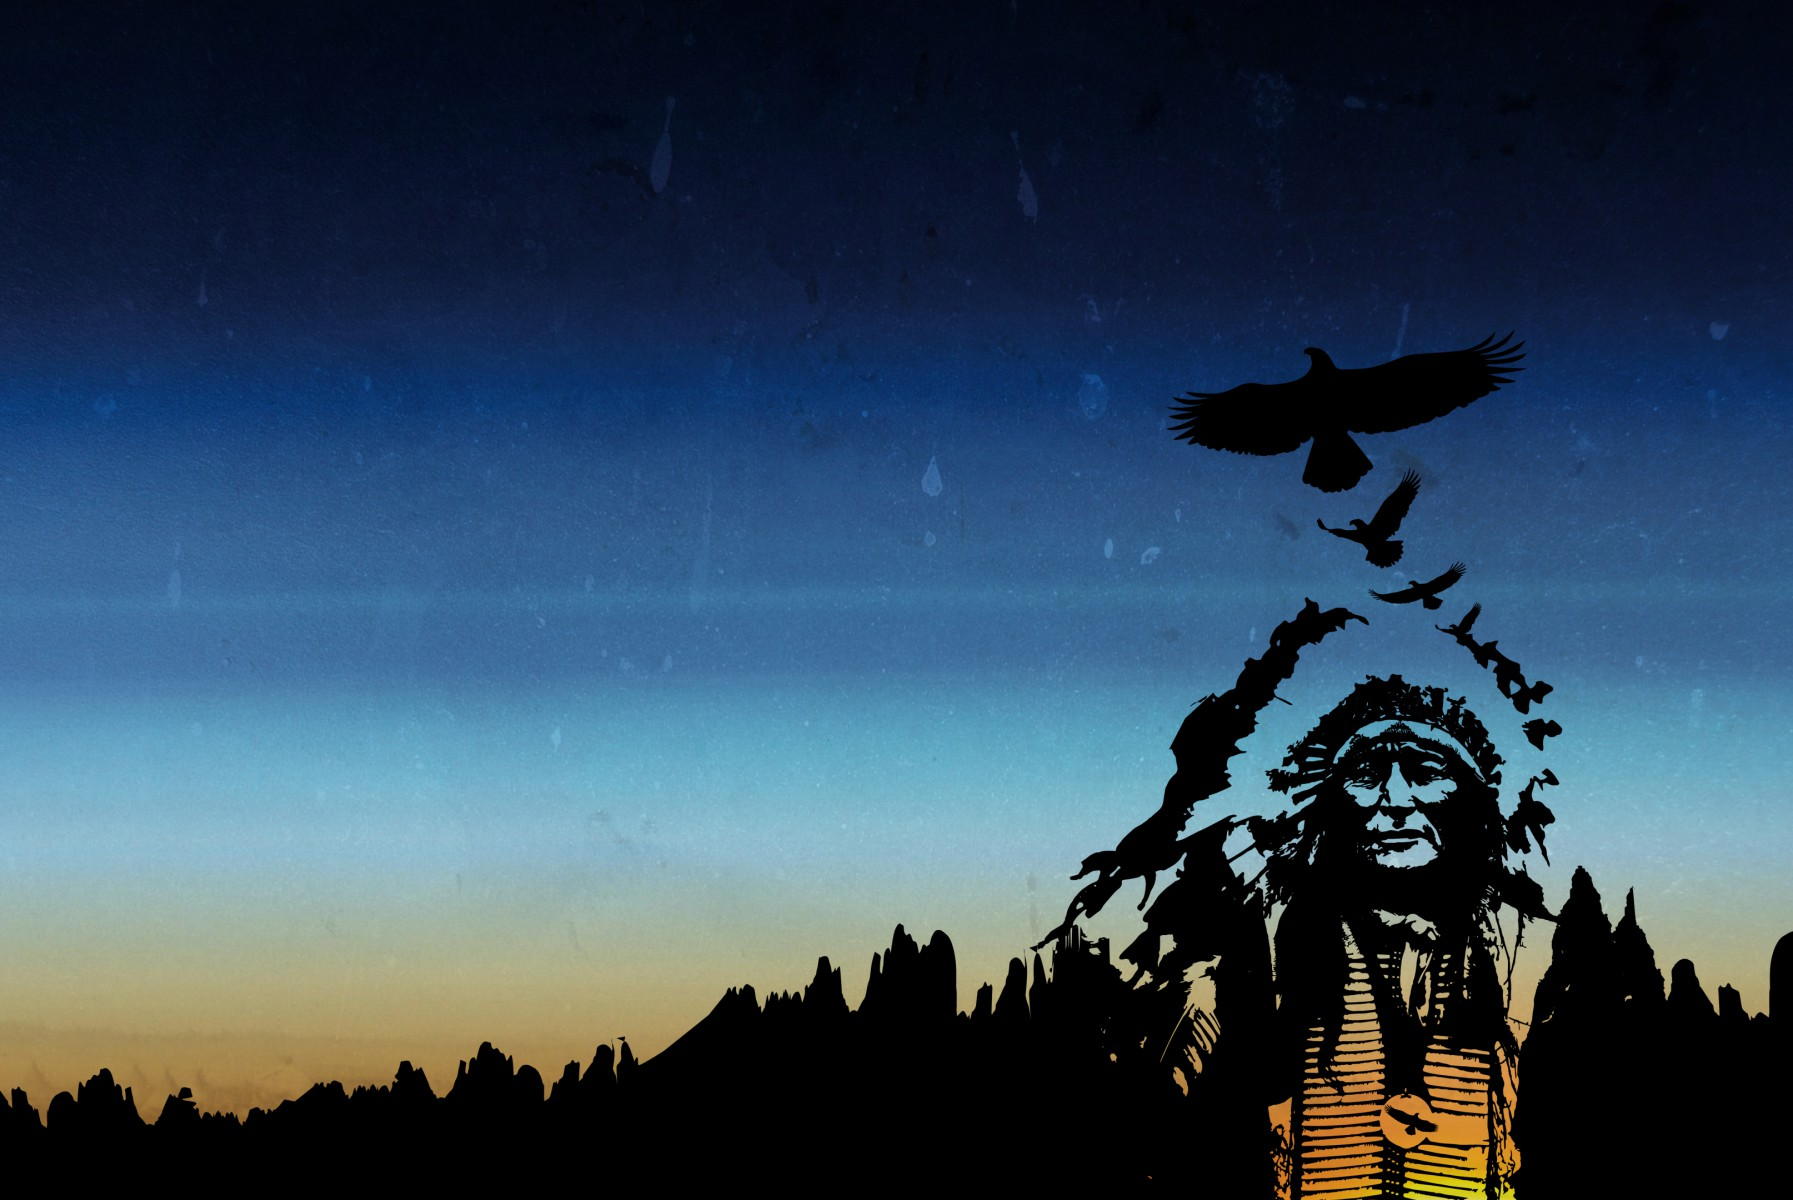 american indian background - photo #4